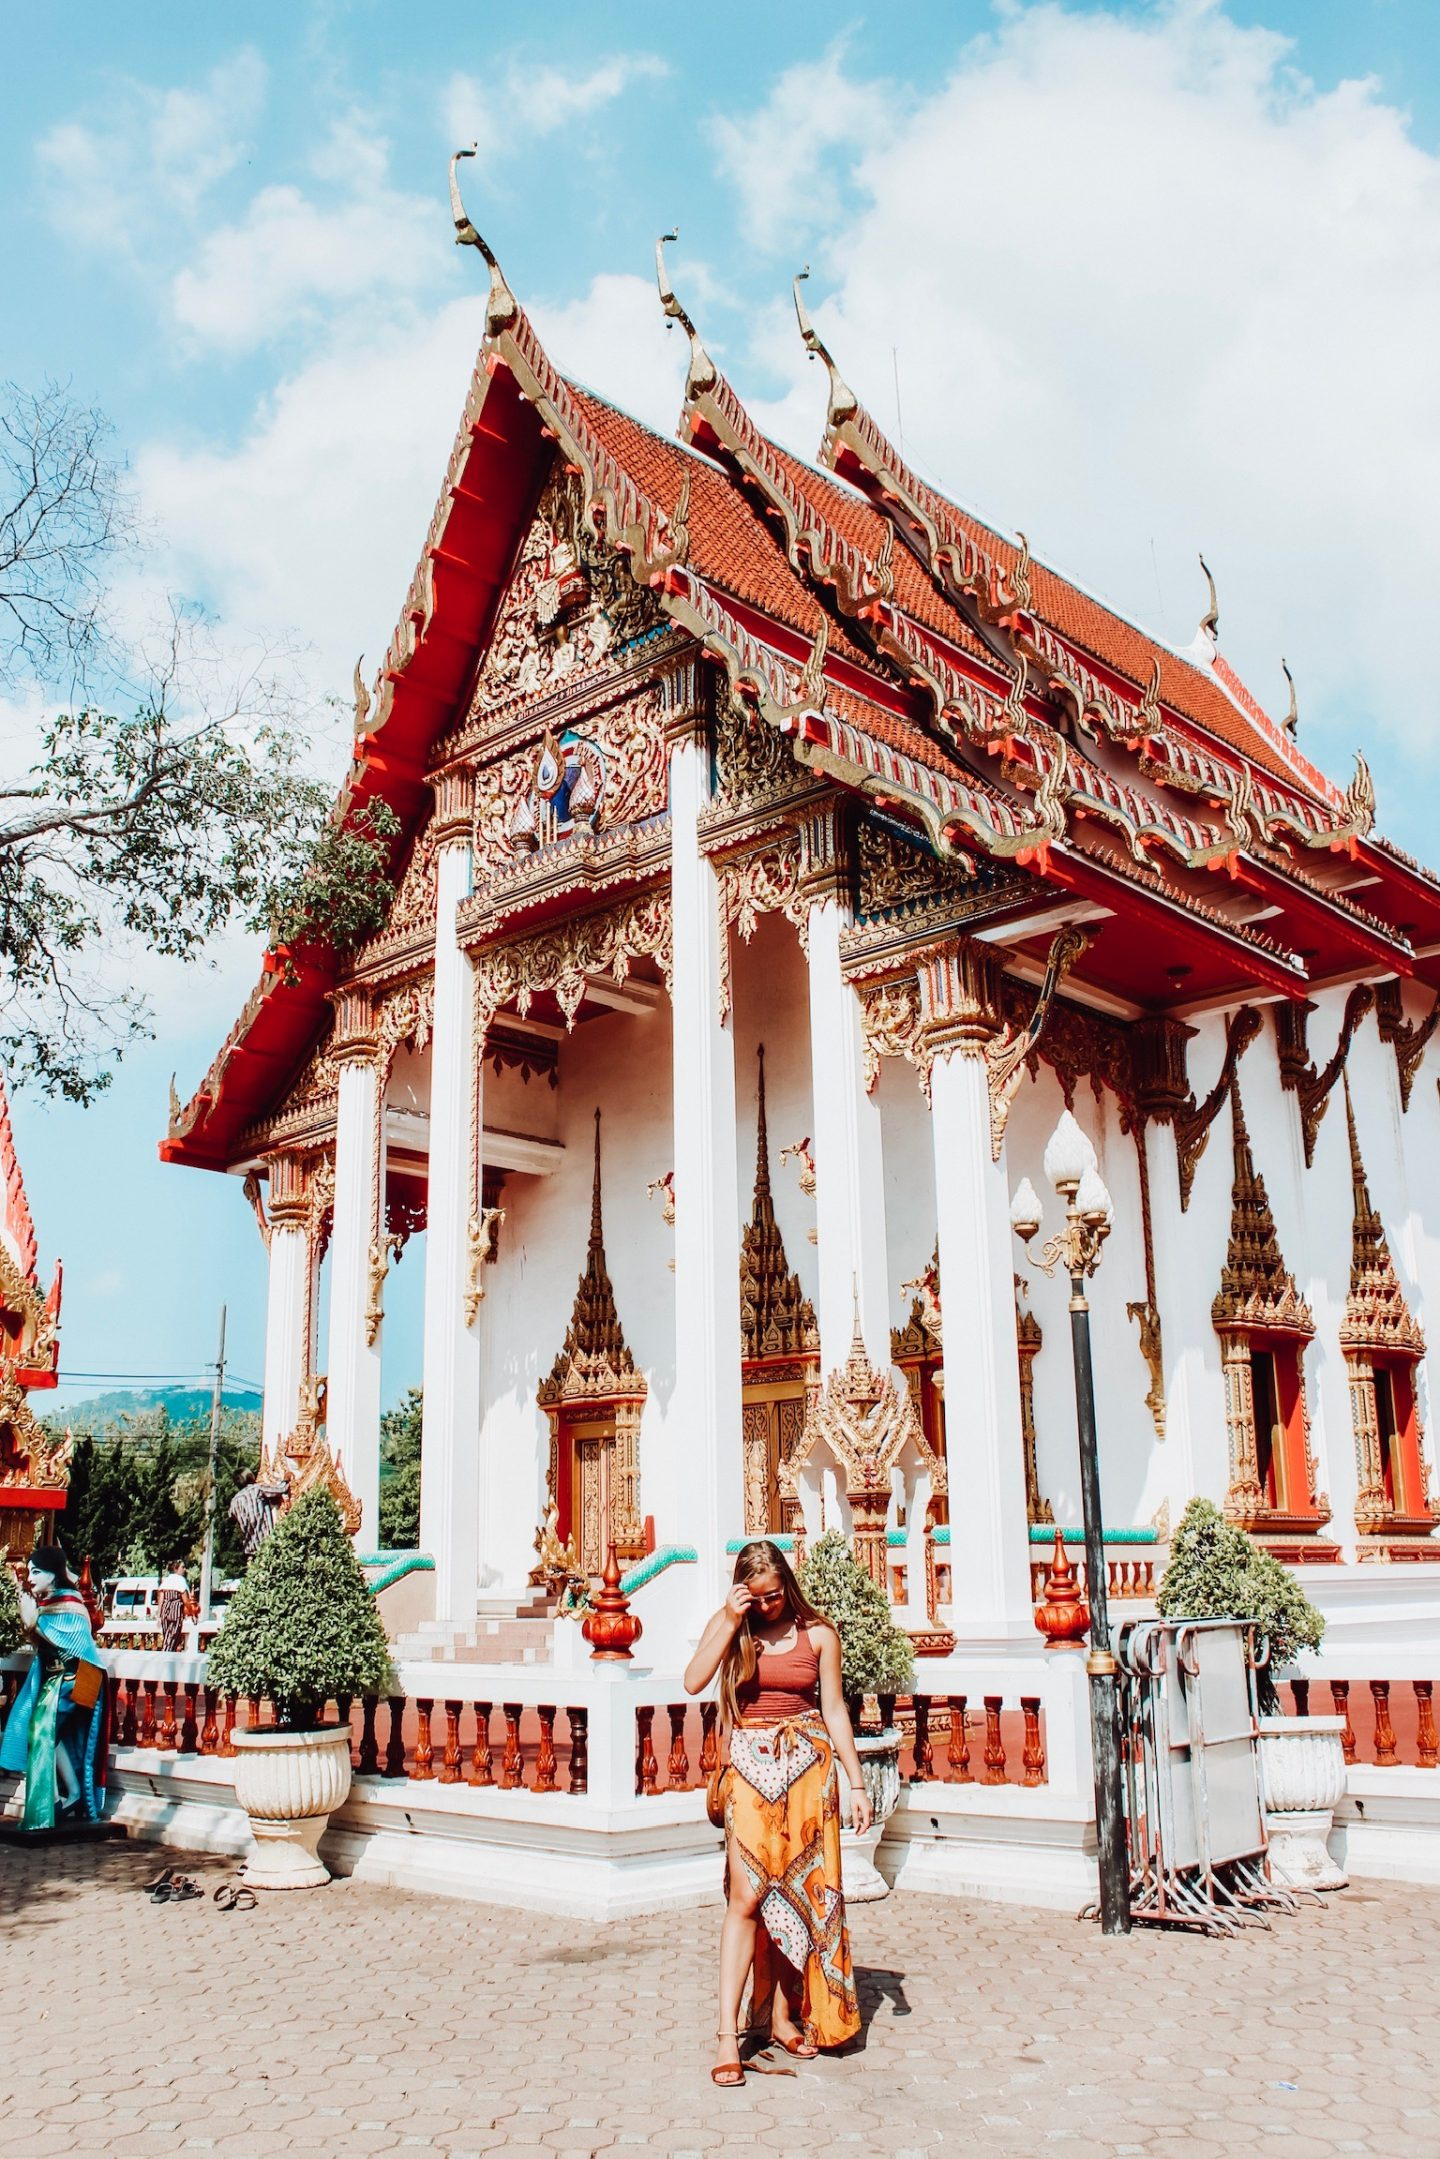 Exploring the Wat Chalong temple in Phuket, Thailand!